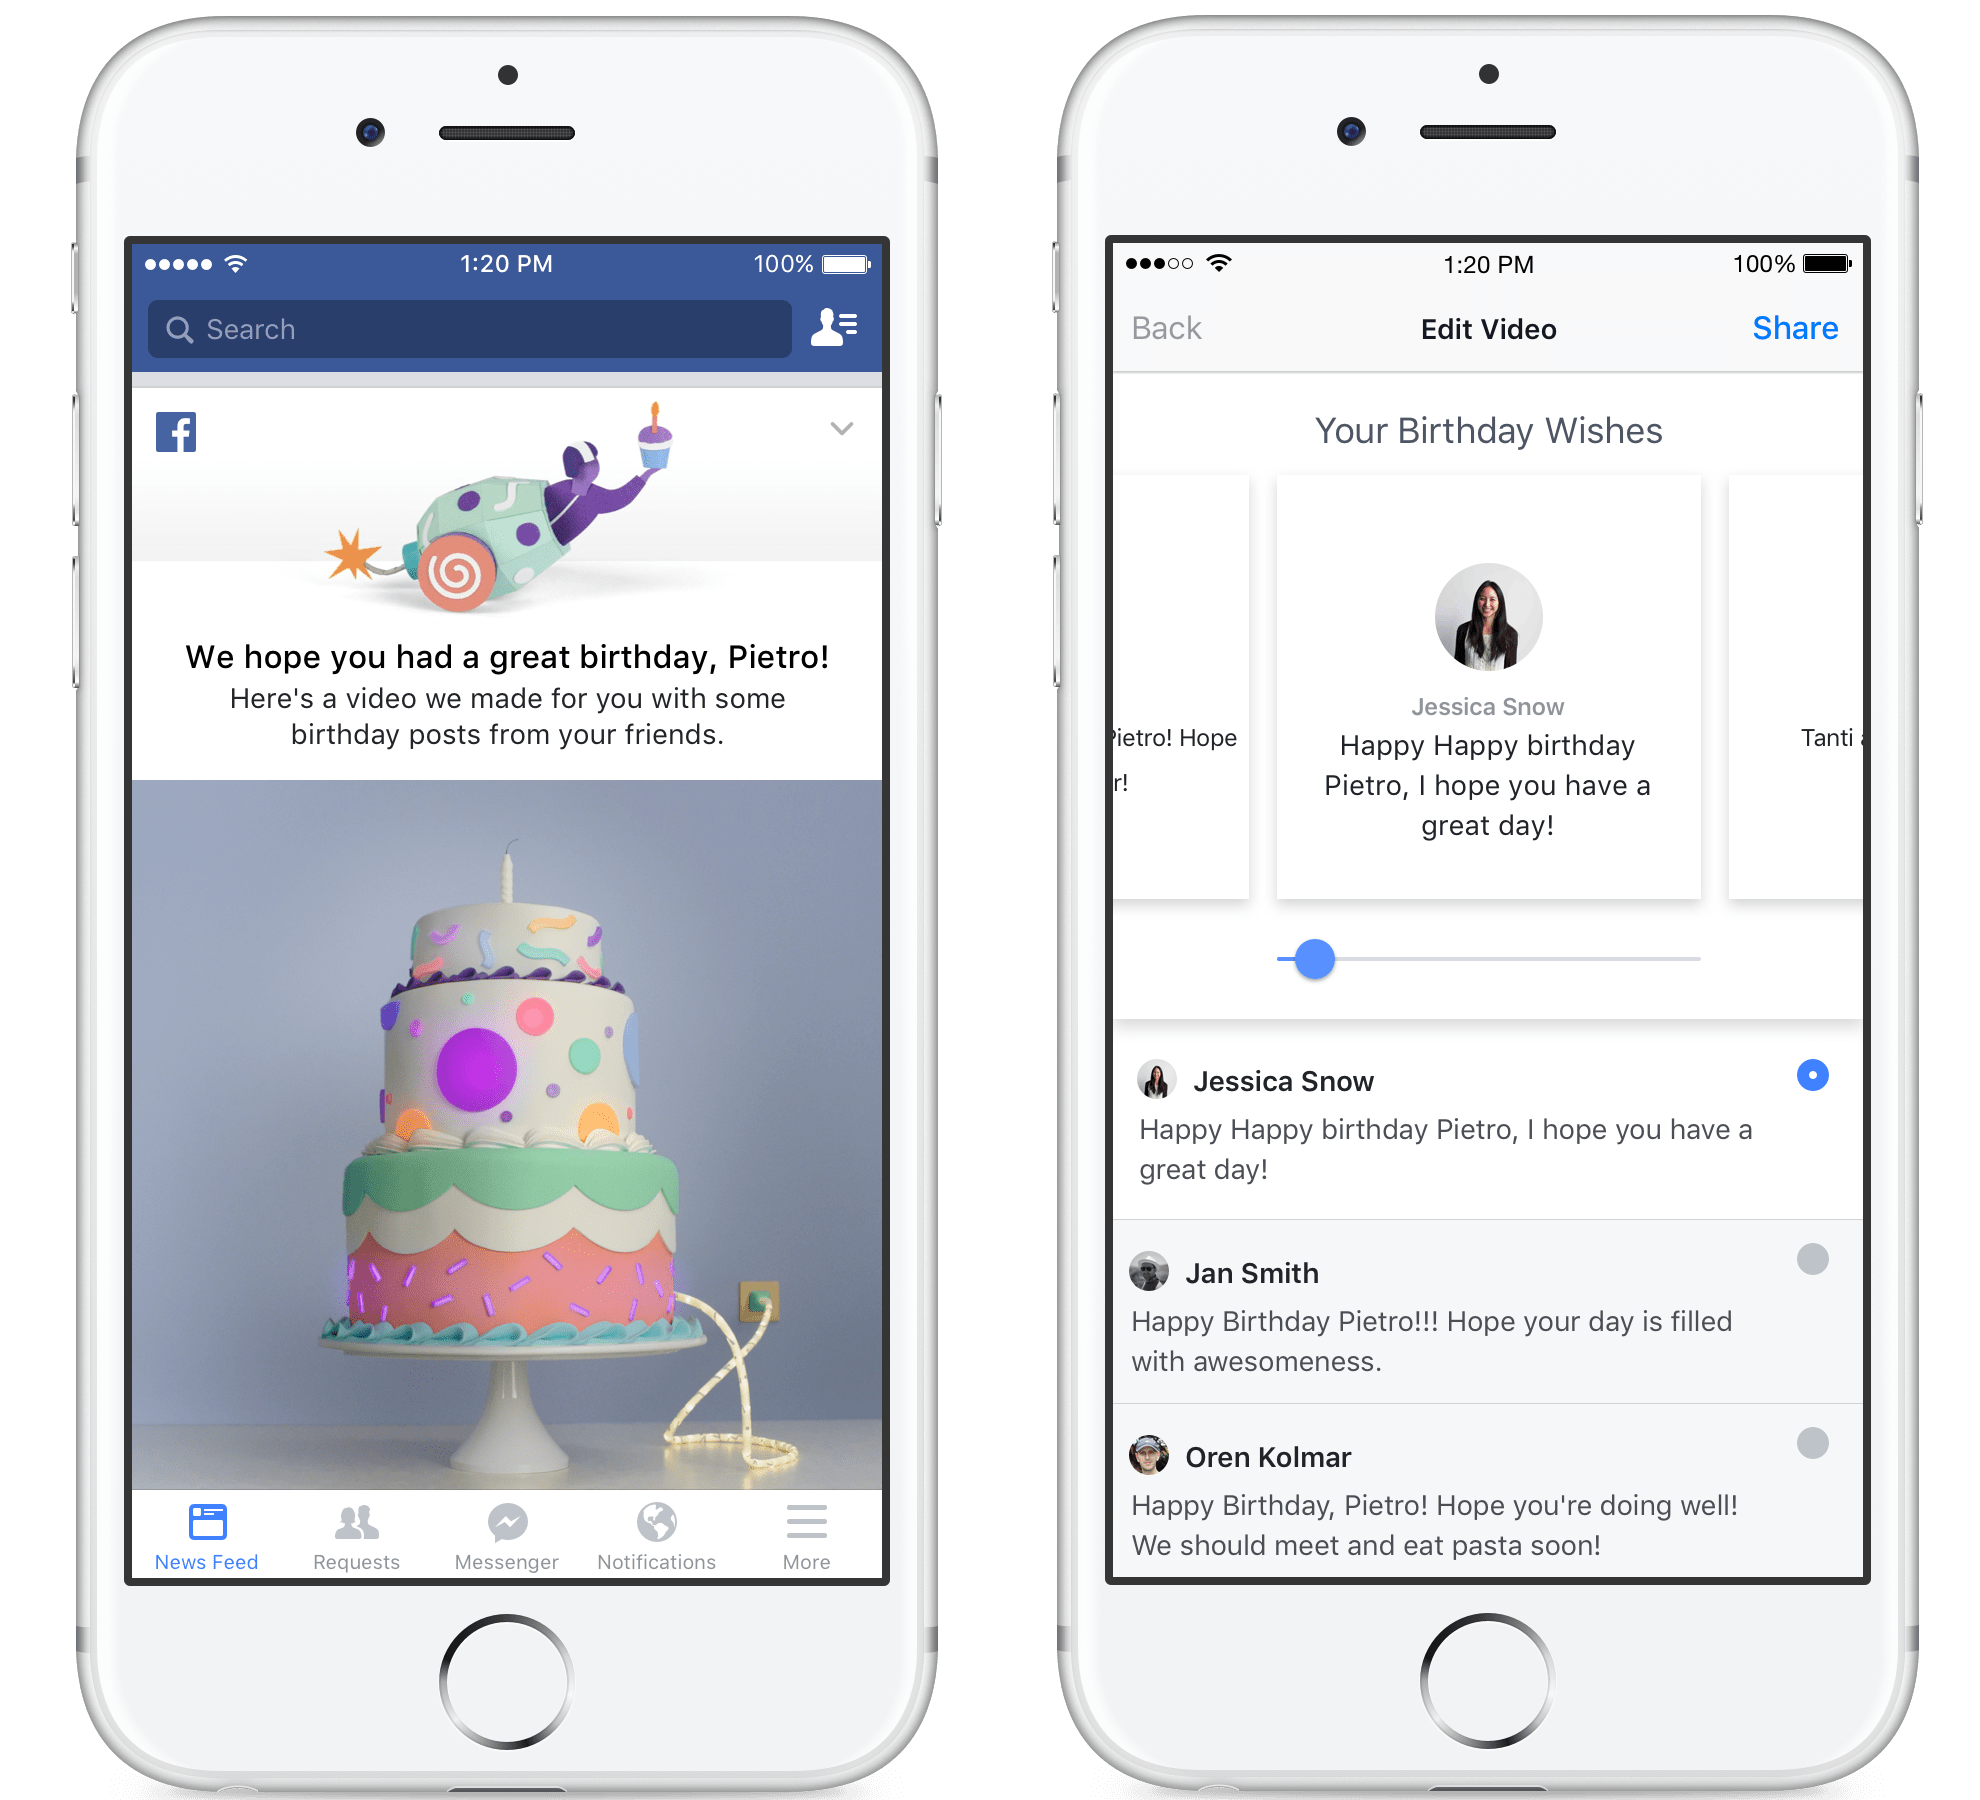 Facebook S New Birthday Recap Video Makes Your Day More Delightful